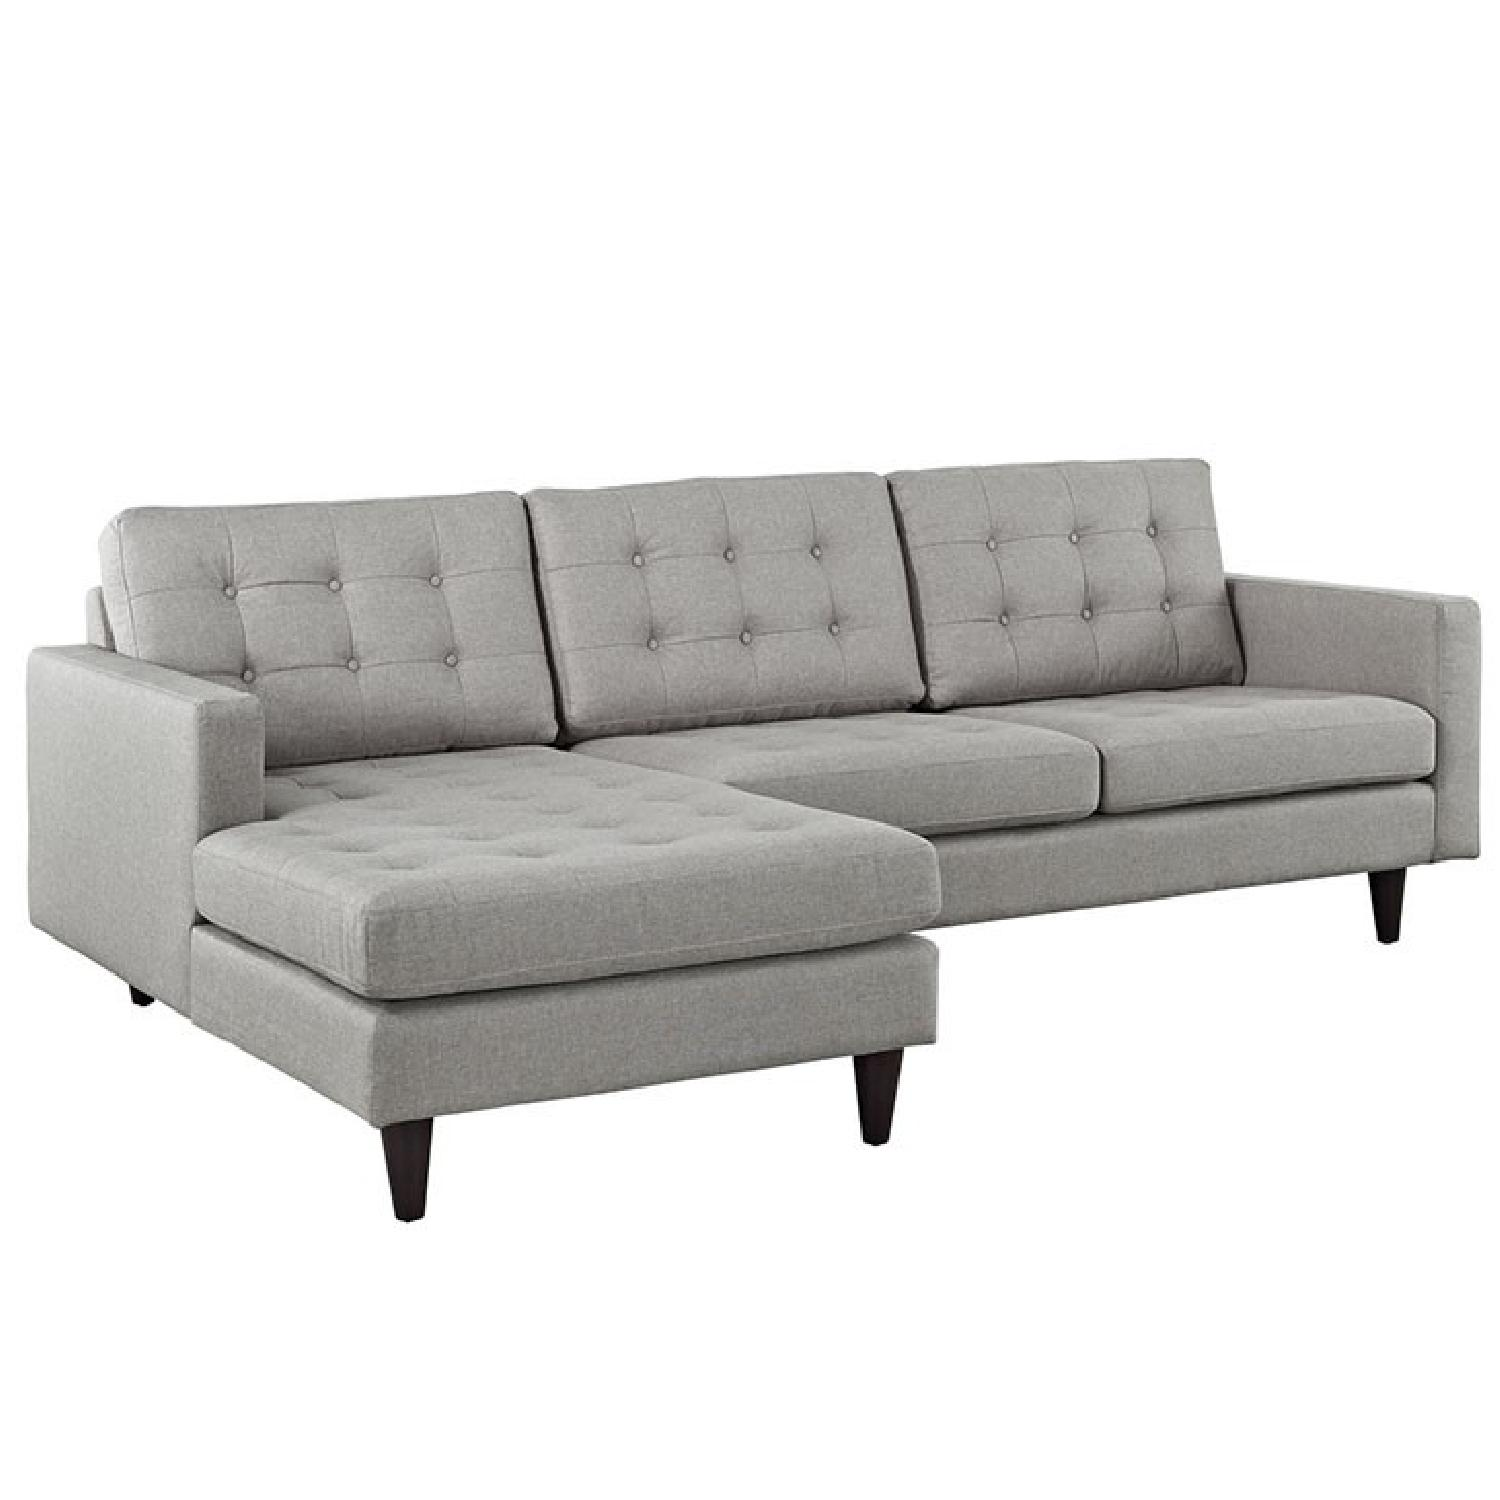 Modern Grey Couch w Chaise Lounge AptDeco